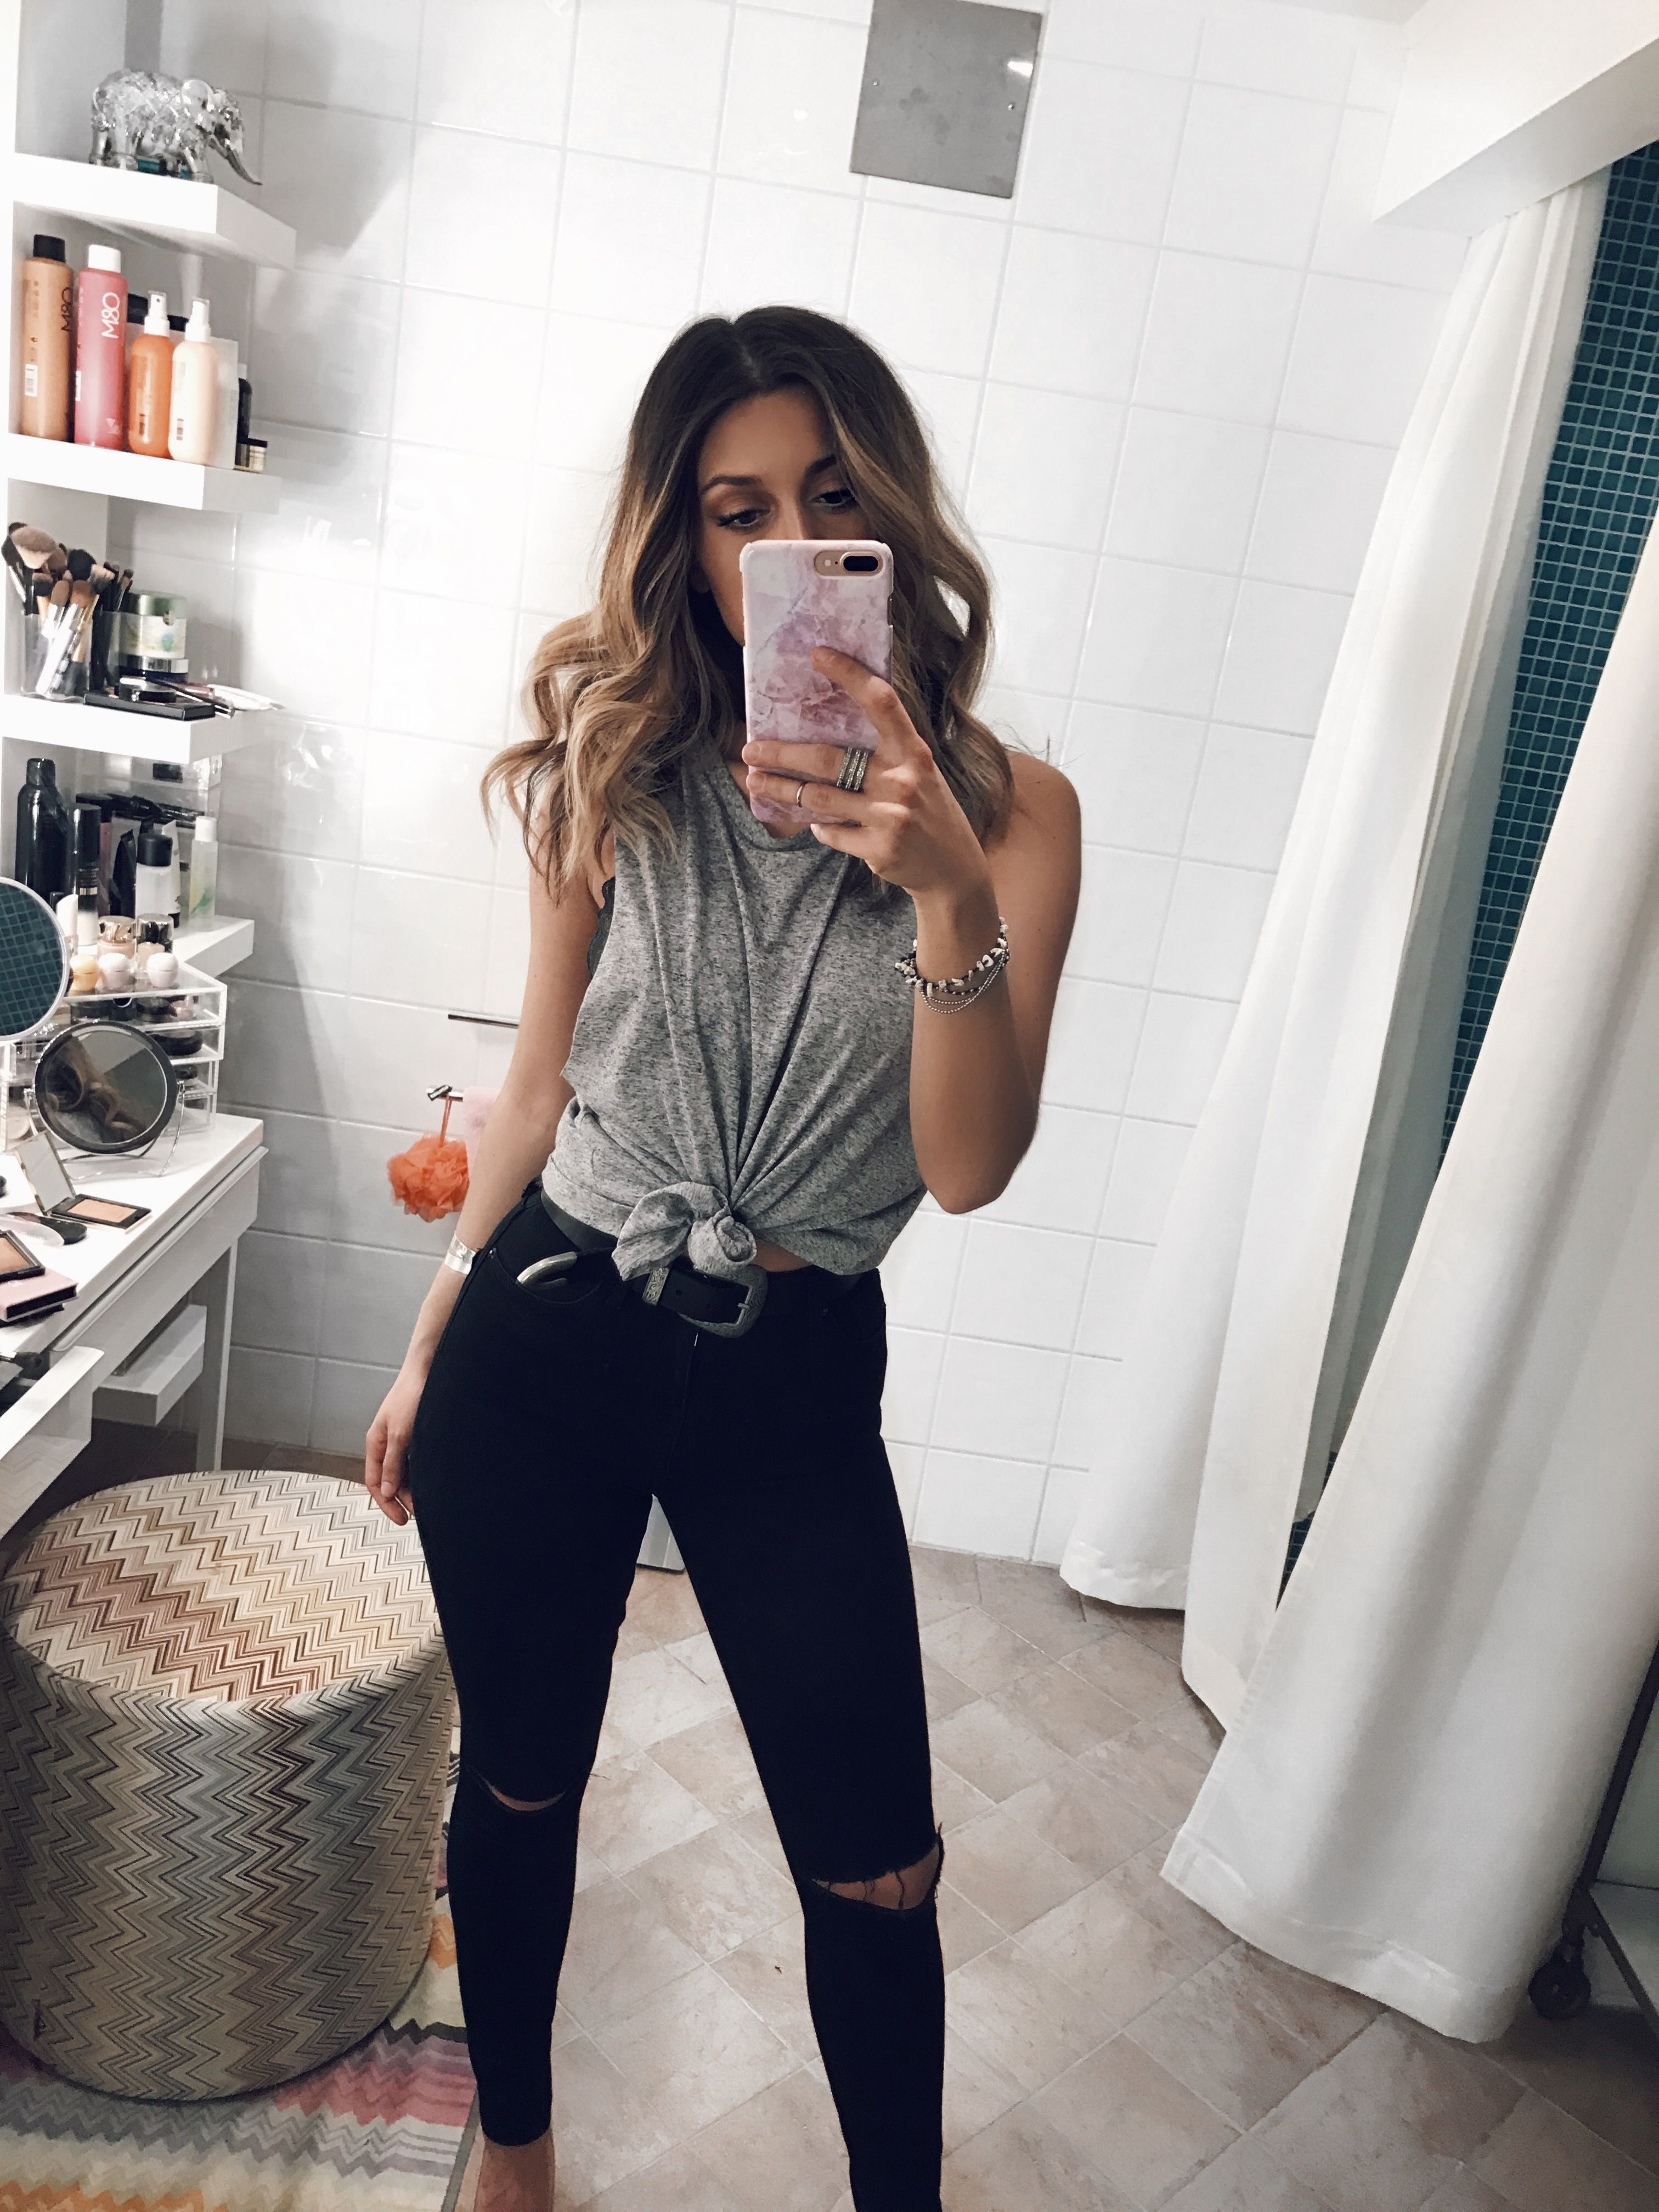 new arrival 24bf1 2df20 Bianca Ingrosso » W E E K E N D Jeansoutfits, Sportiga Outfits, Dammode,  Sommaroutfits, Svart Jeans Outfit